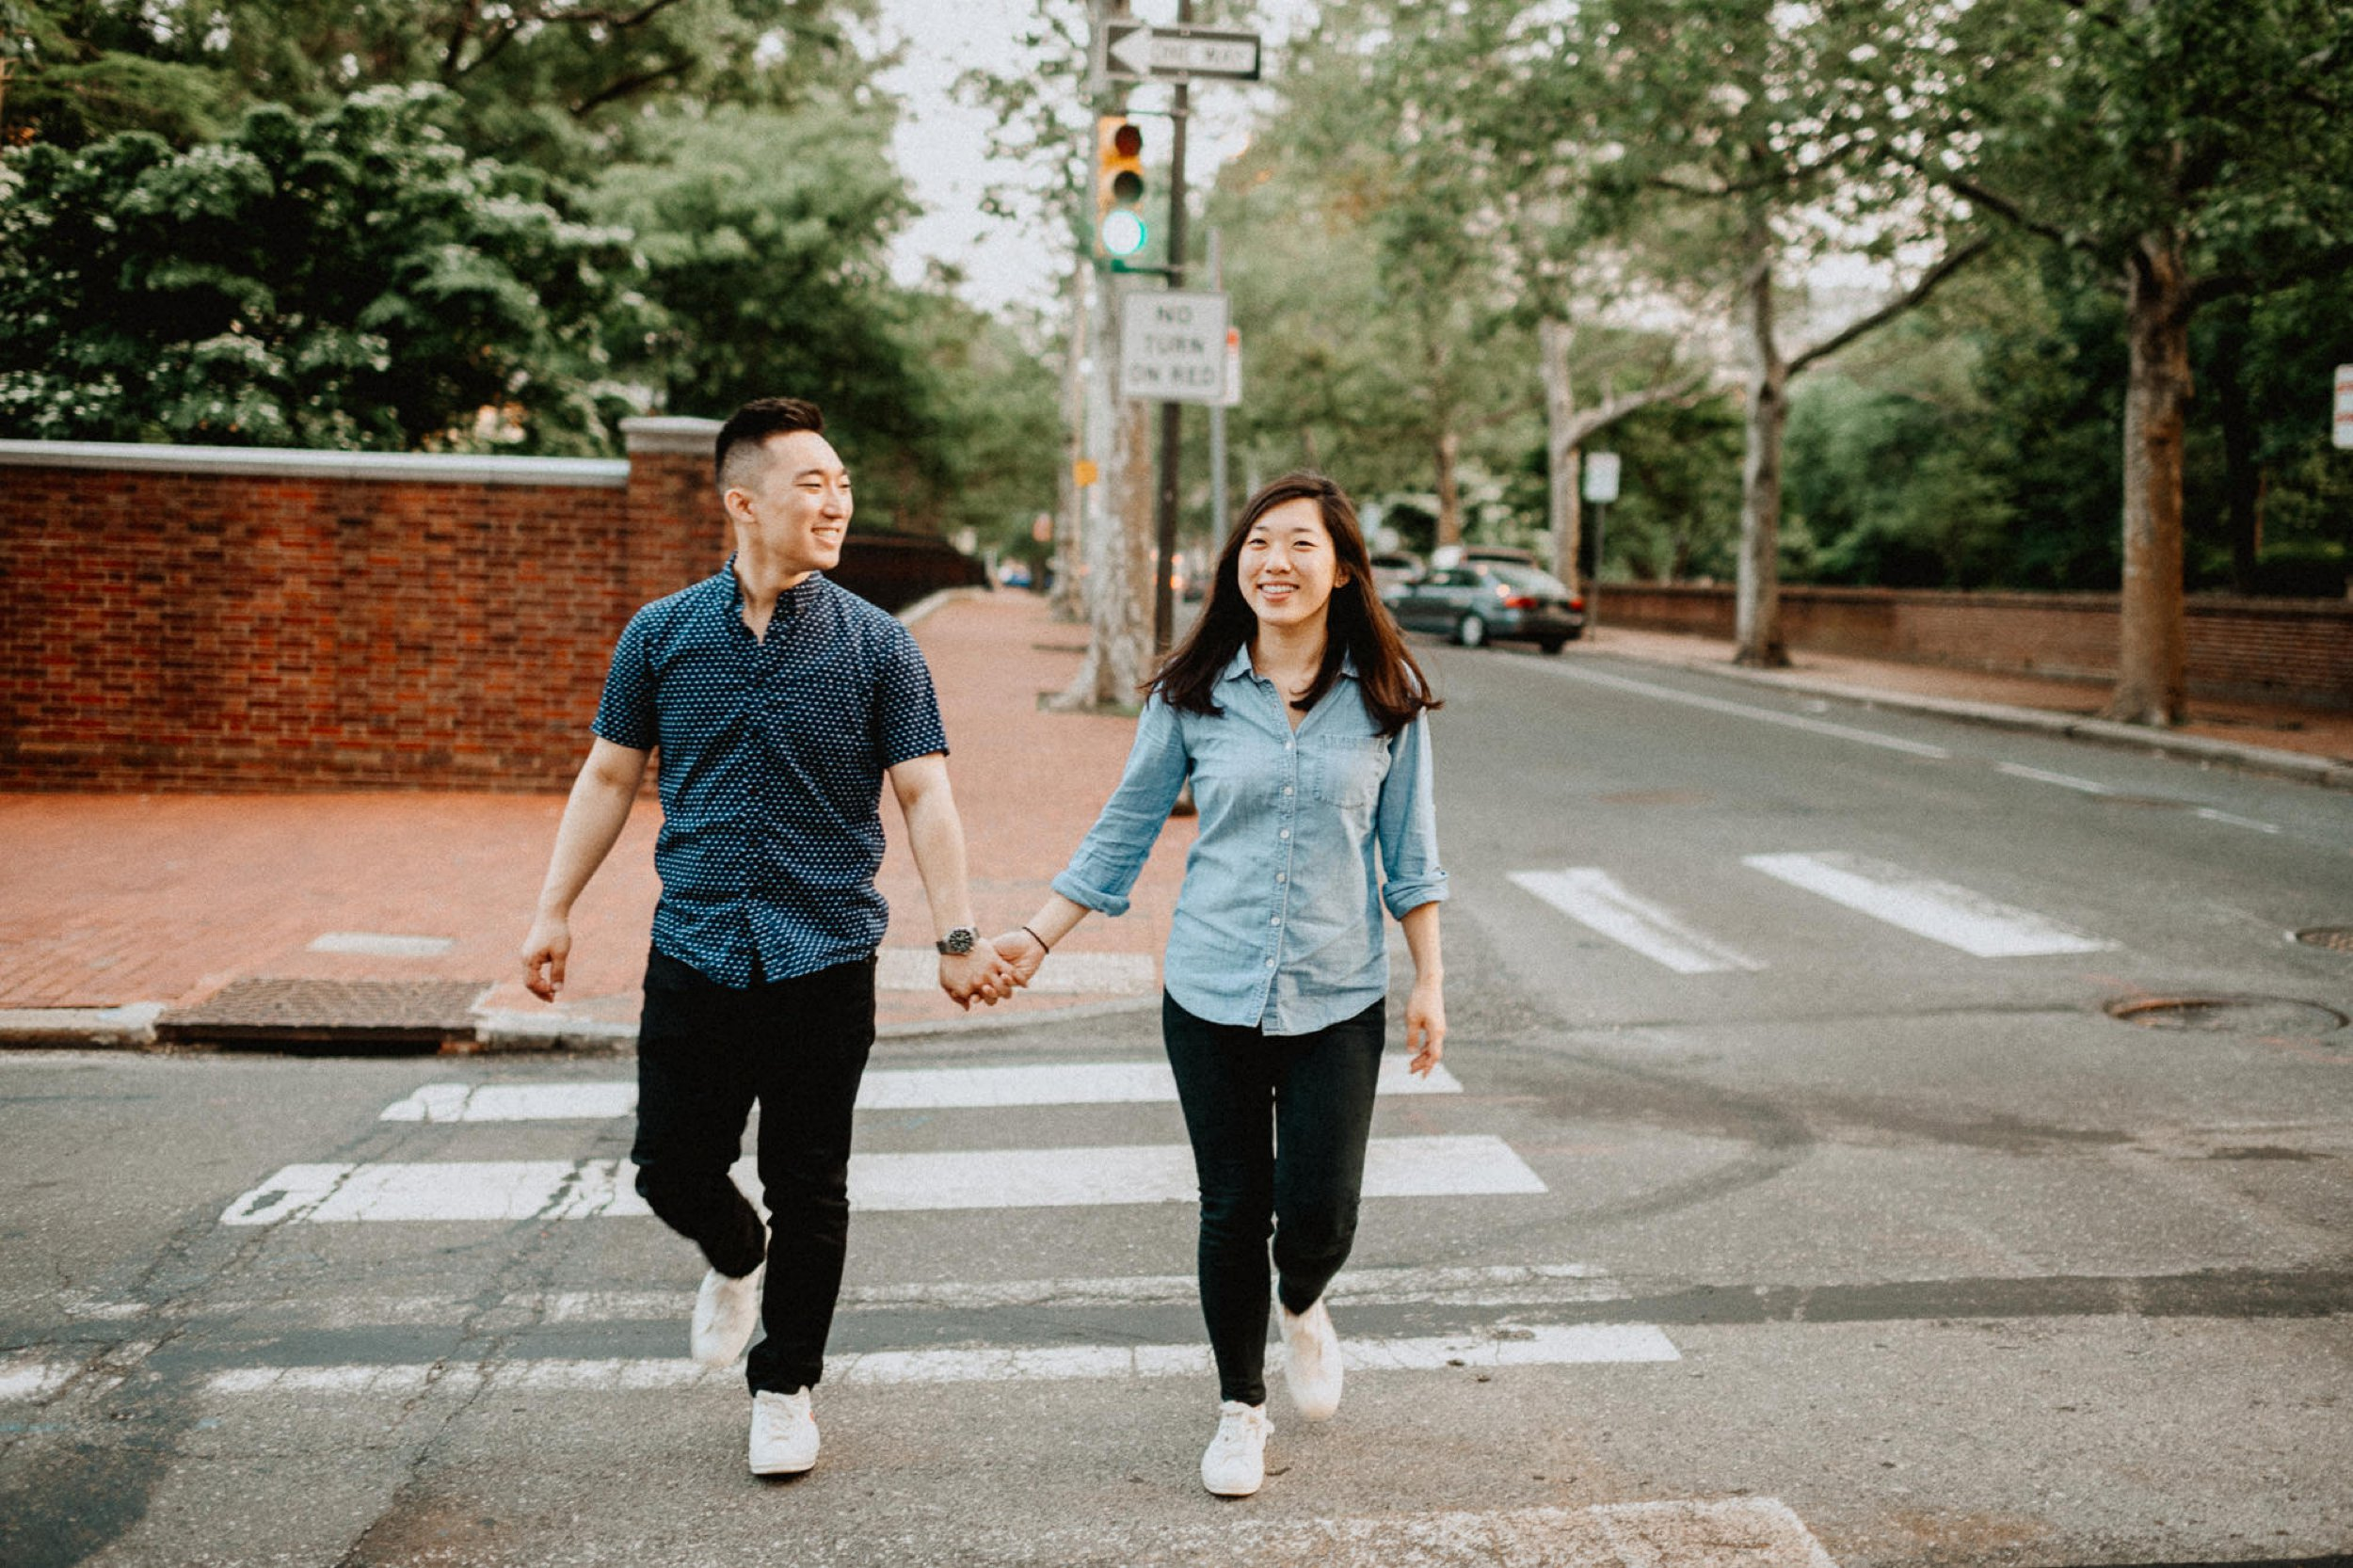 philly_engagement_session-25.jpg